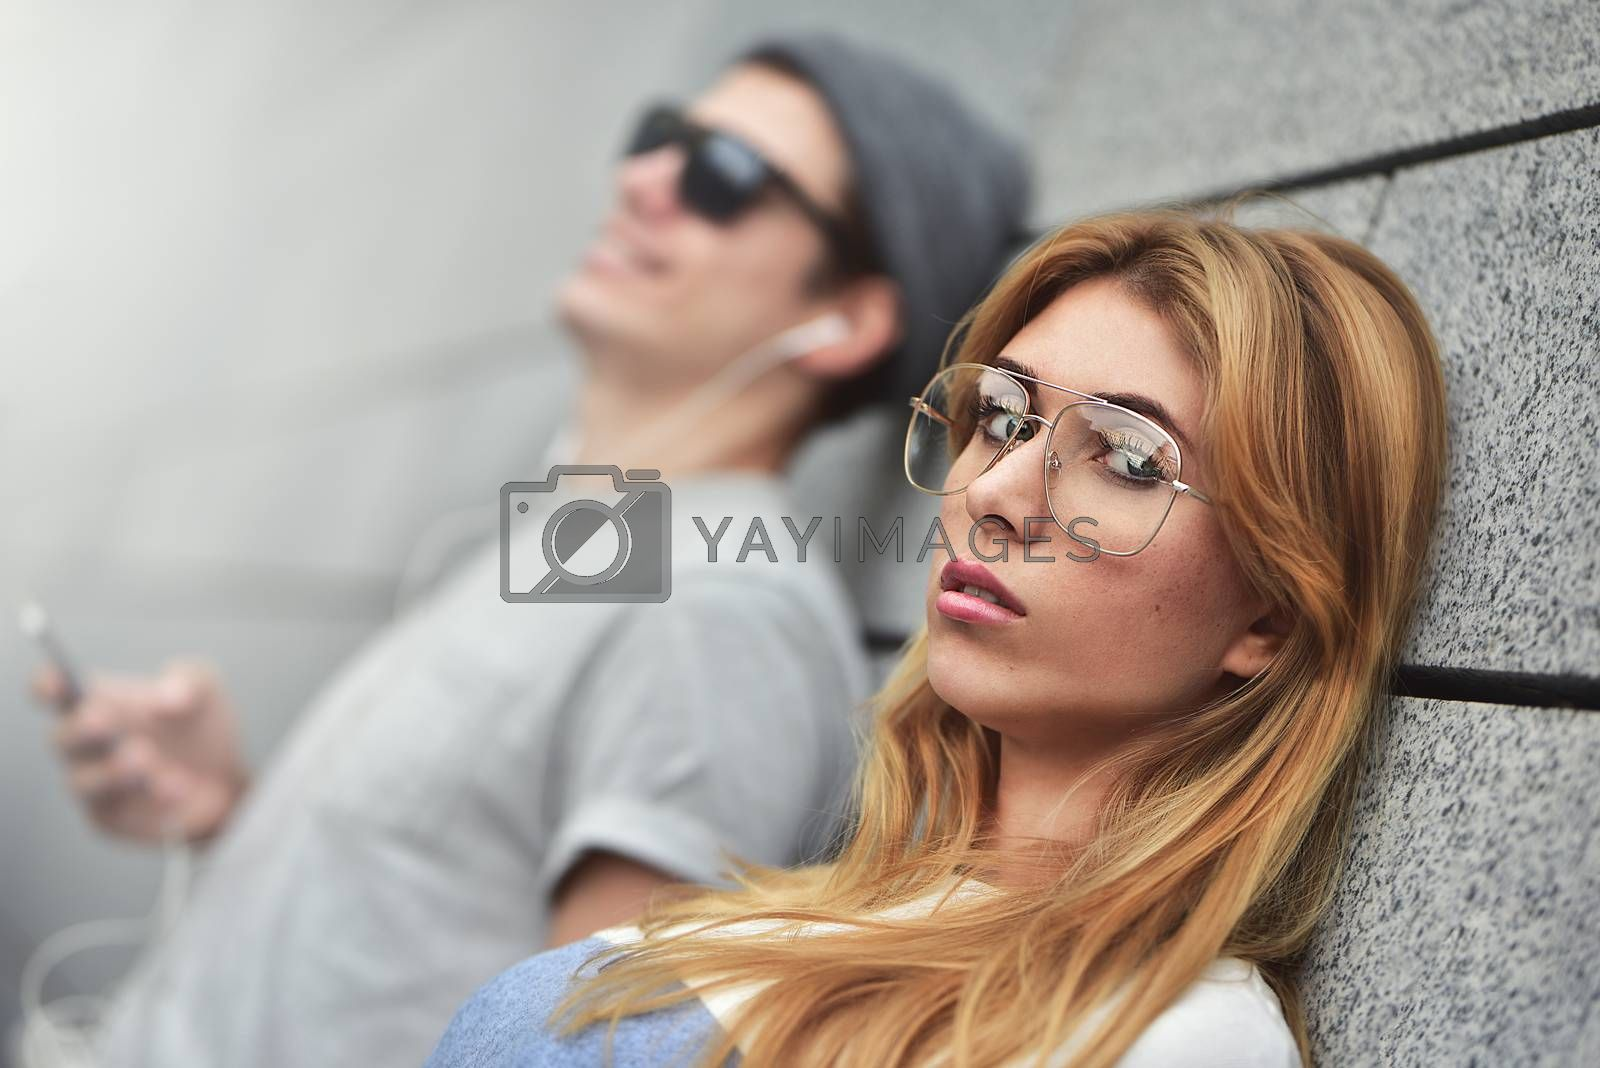 Portrait of Young attractive couple listening to music on the same pair of headphones, dressed in stylish clothes against a background of a gray wall.